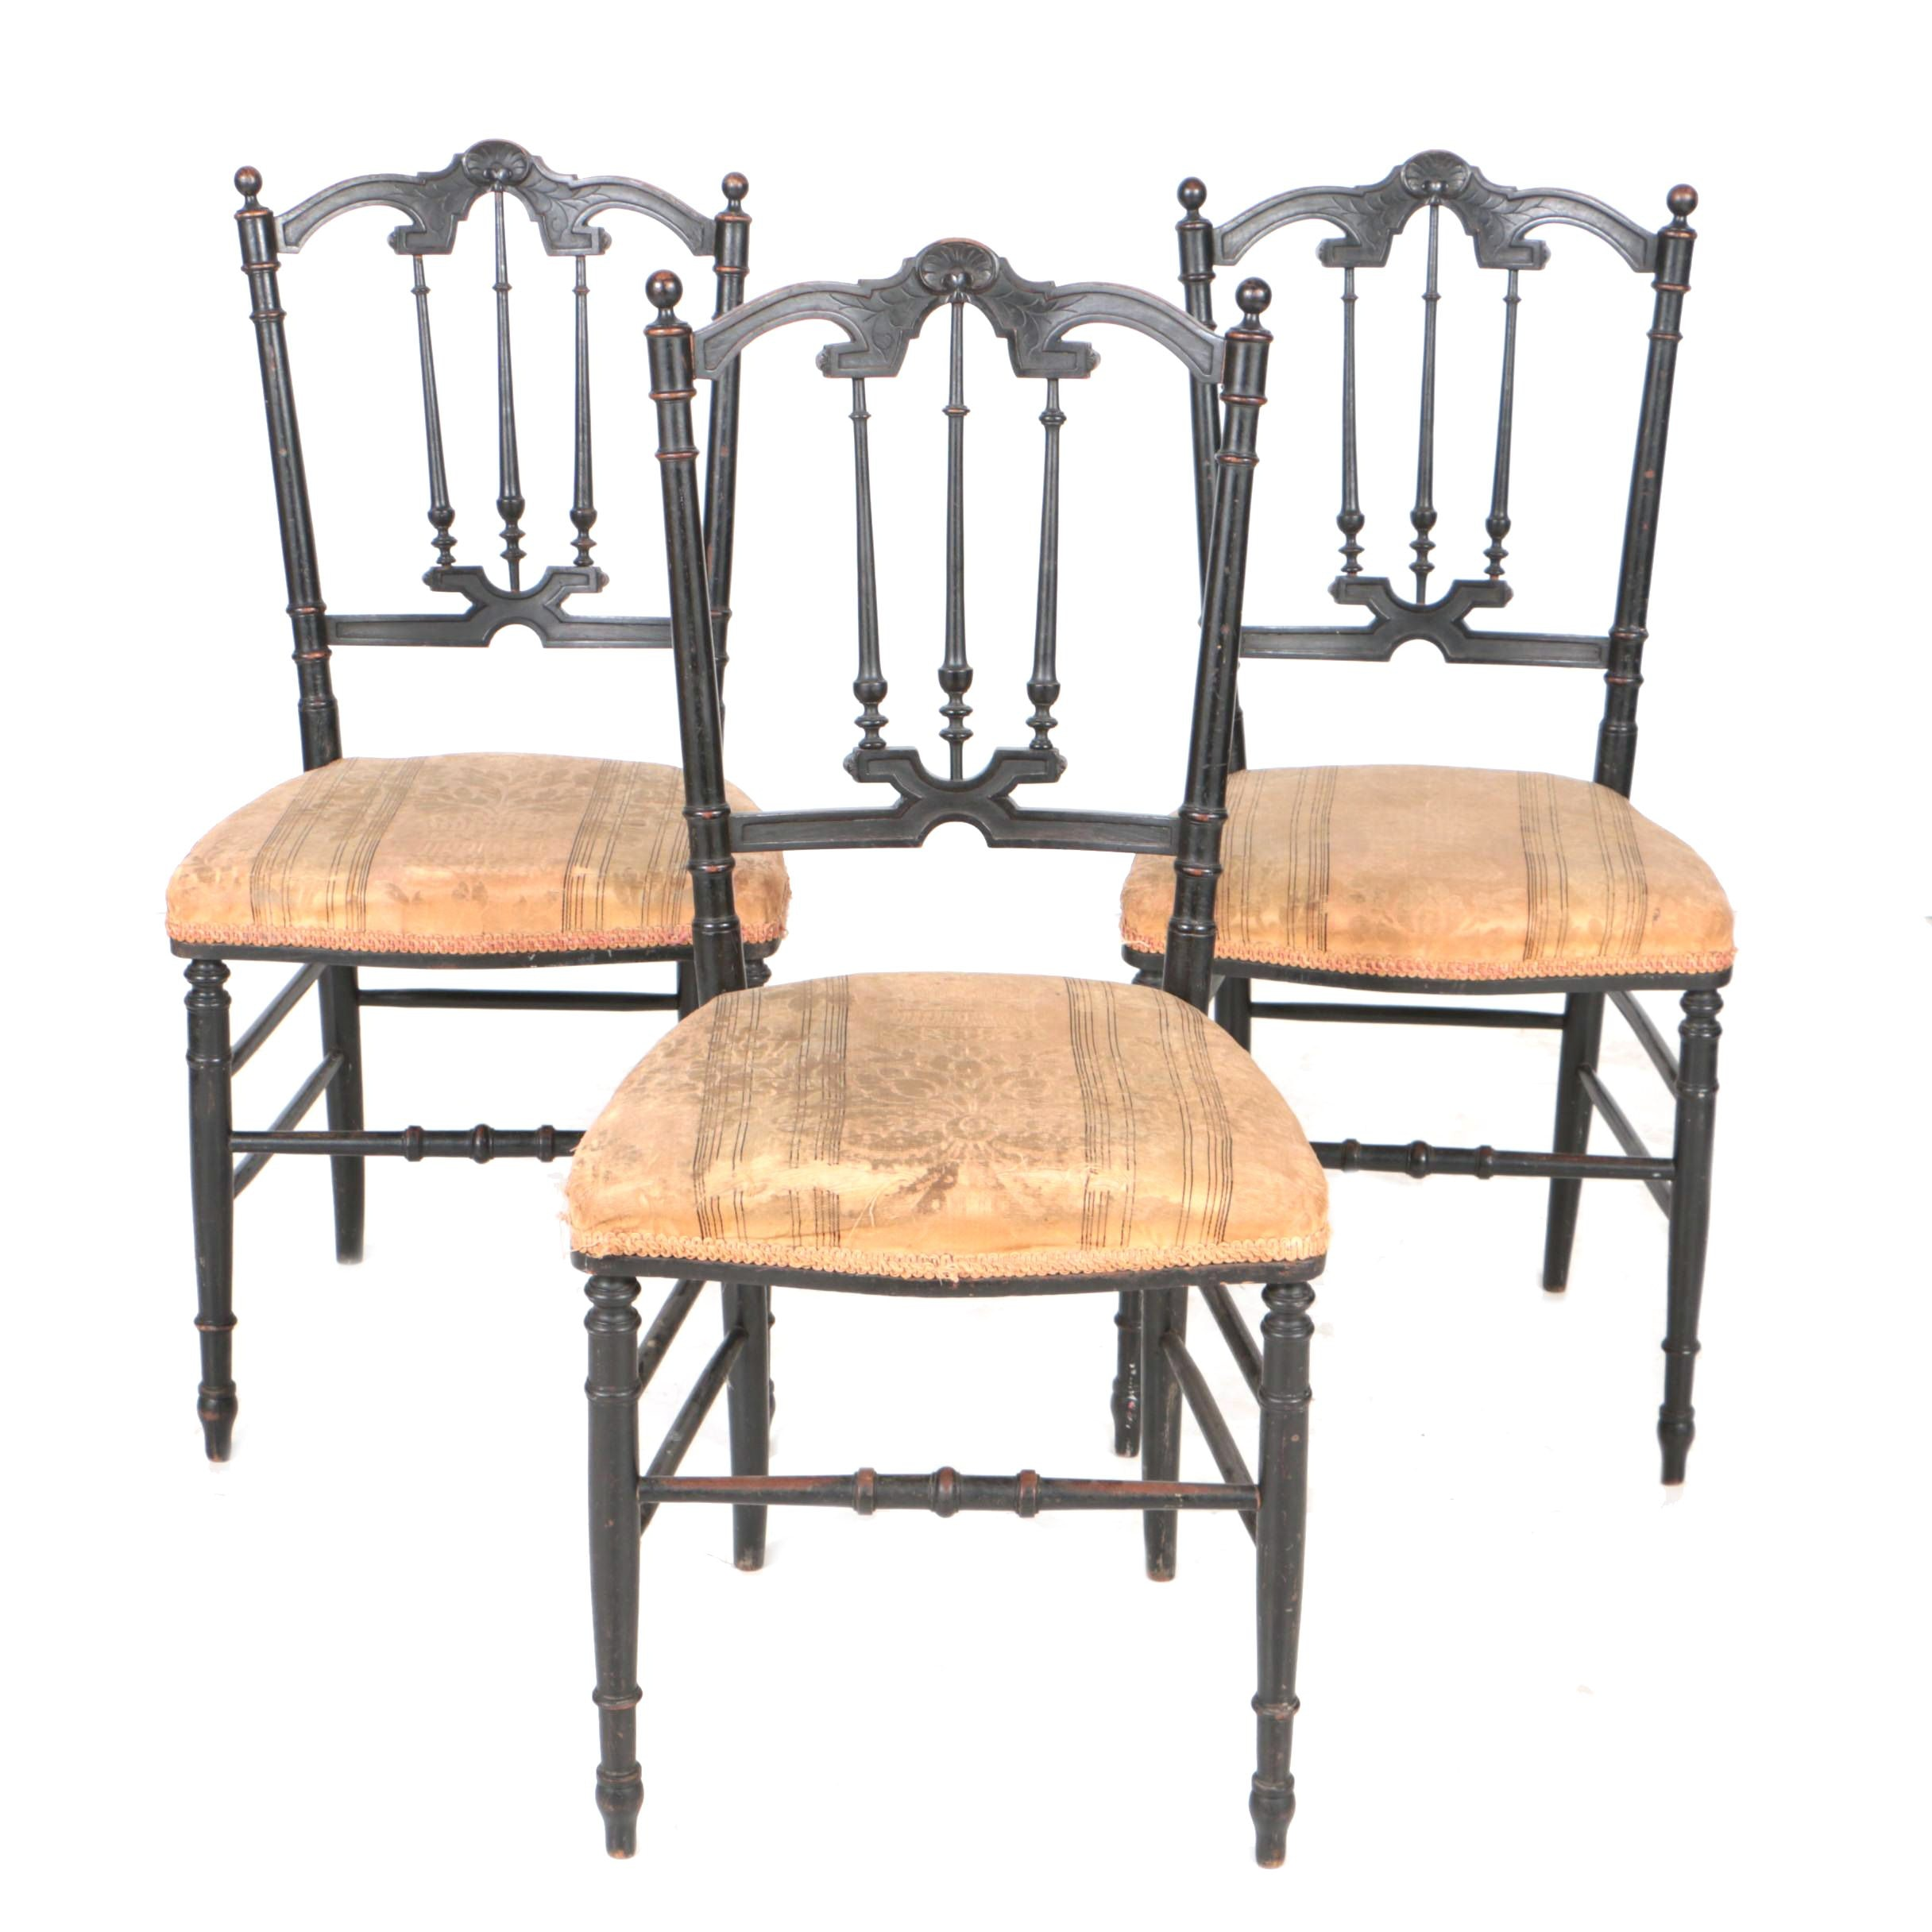 Three Antique Victorian Ebonized and Spindle-Back Parlor Chairs